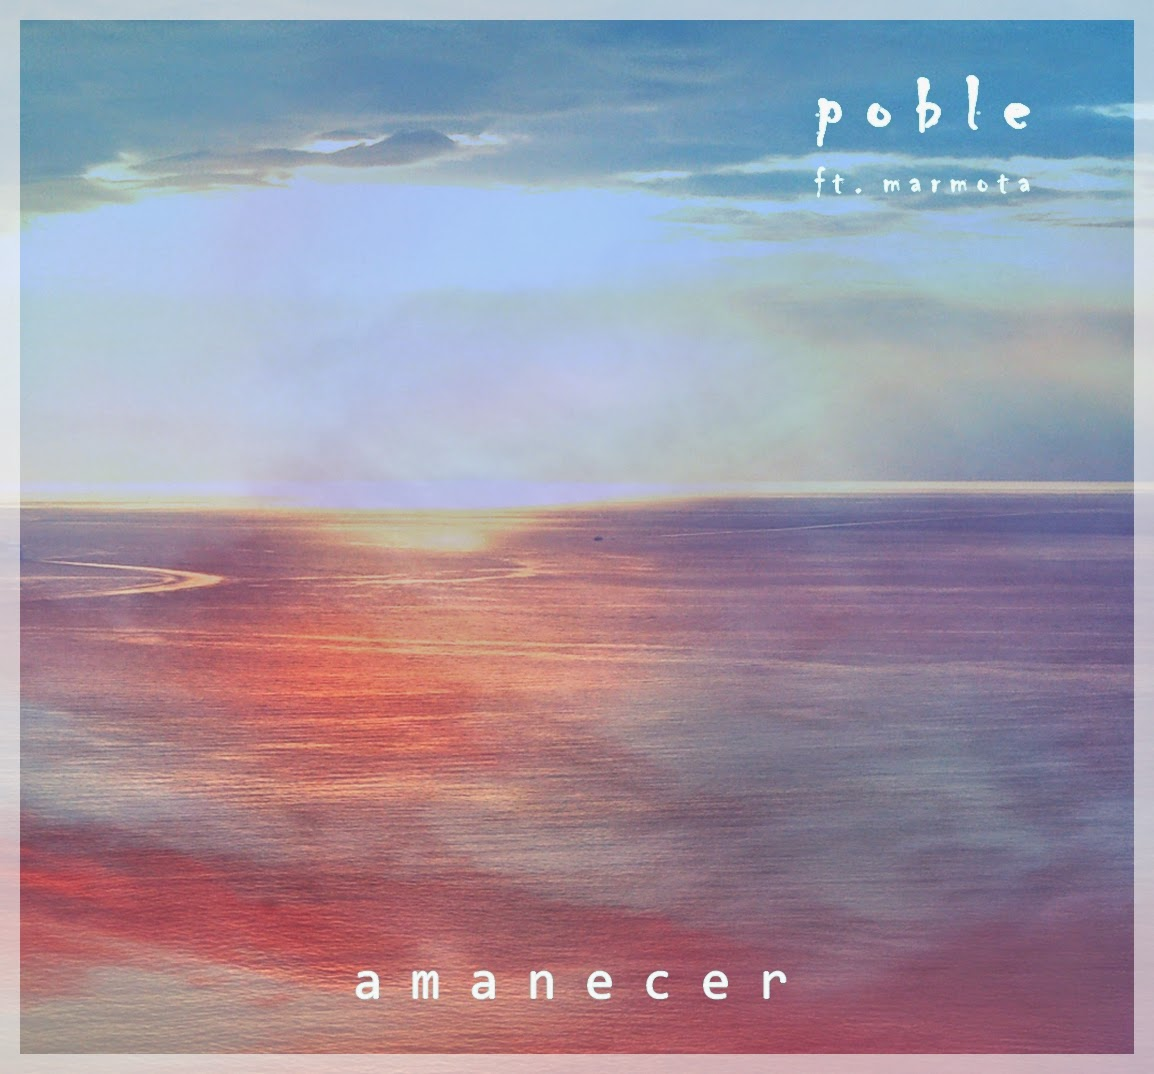 poble amanecer ep cover photo